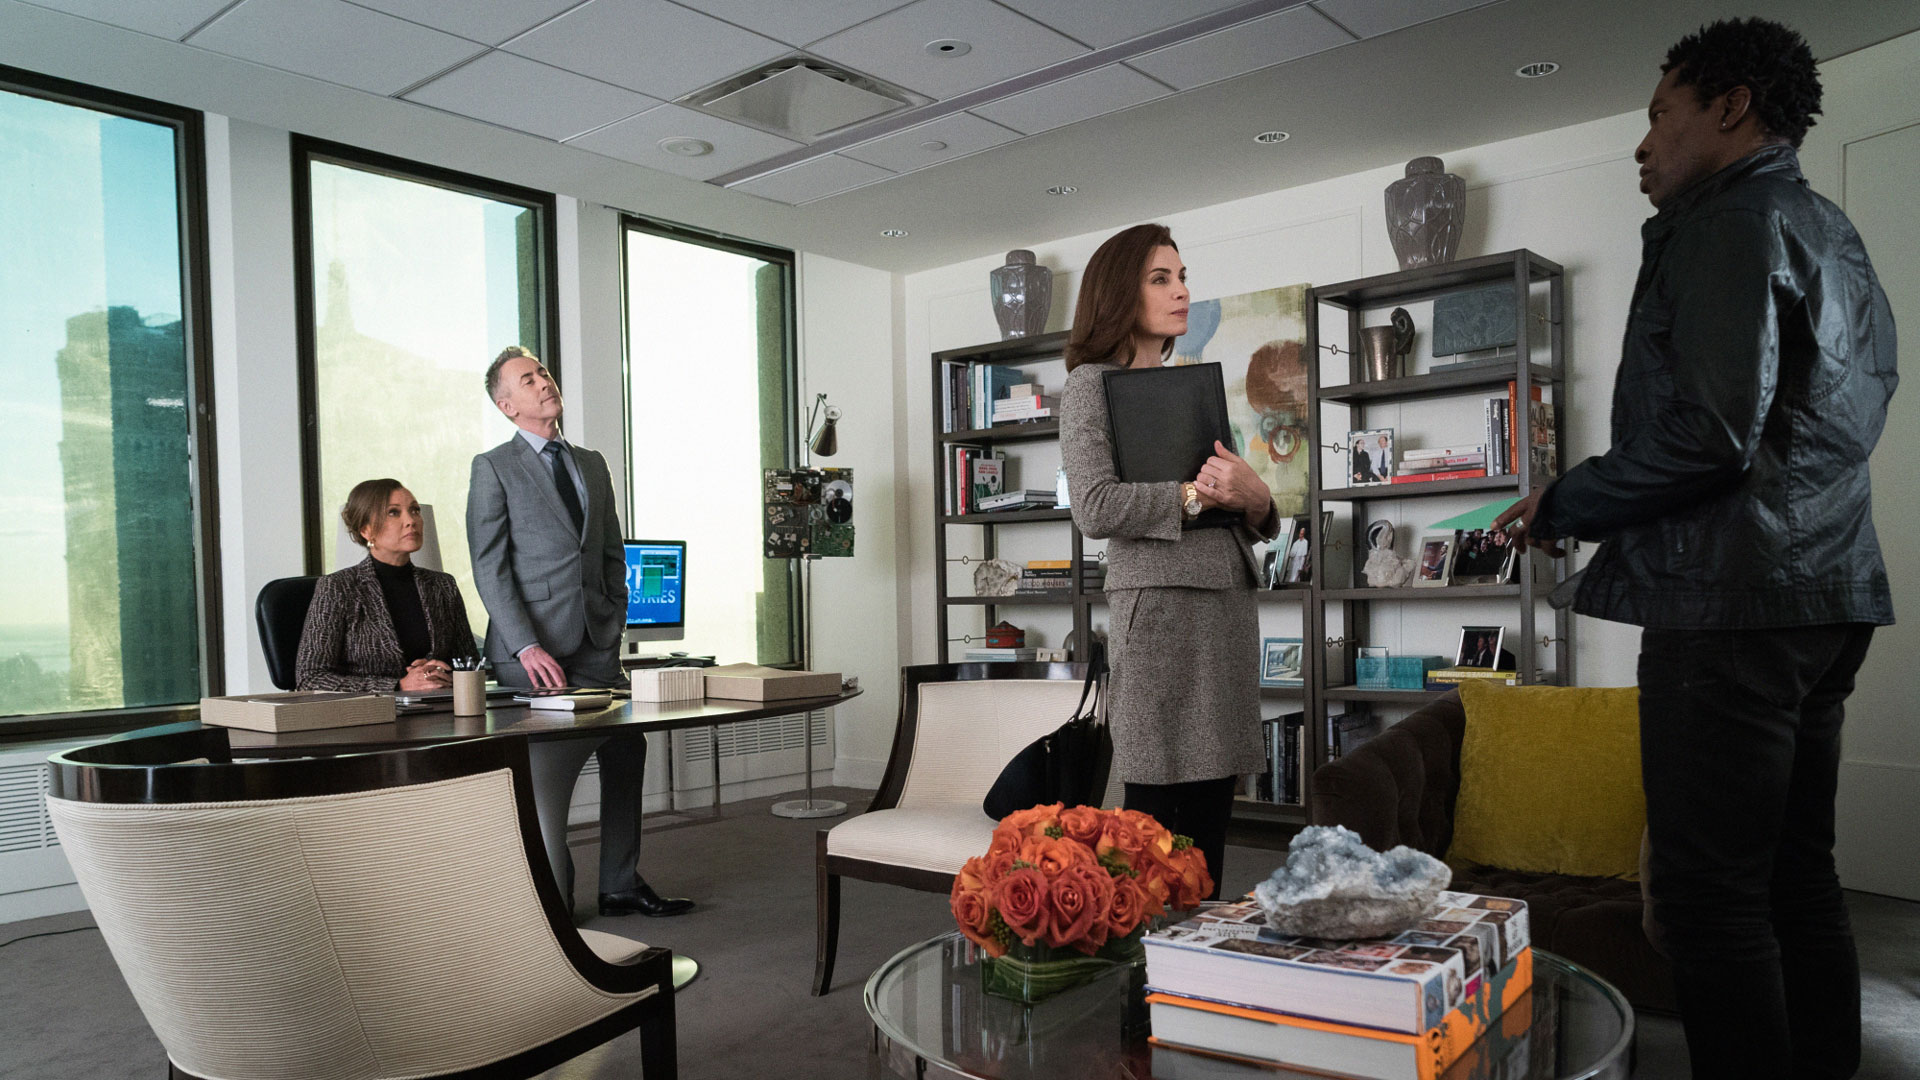 Vanessa Williams as Courtney Paige, Alan Cumming as Eli Gold, and Julianna Margulies as Alicia Florrick